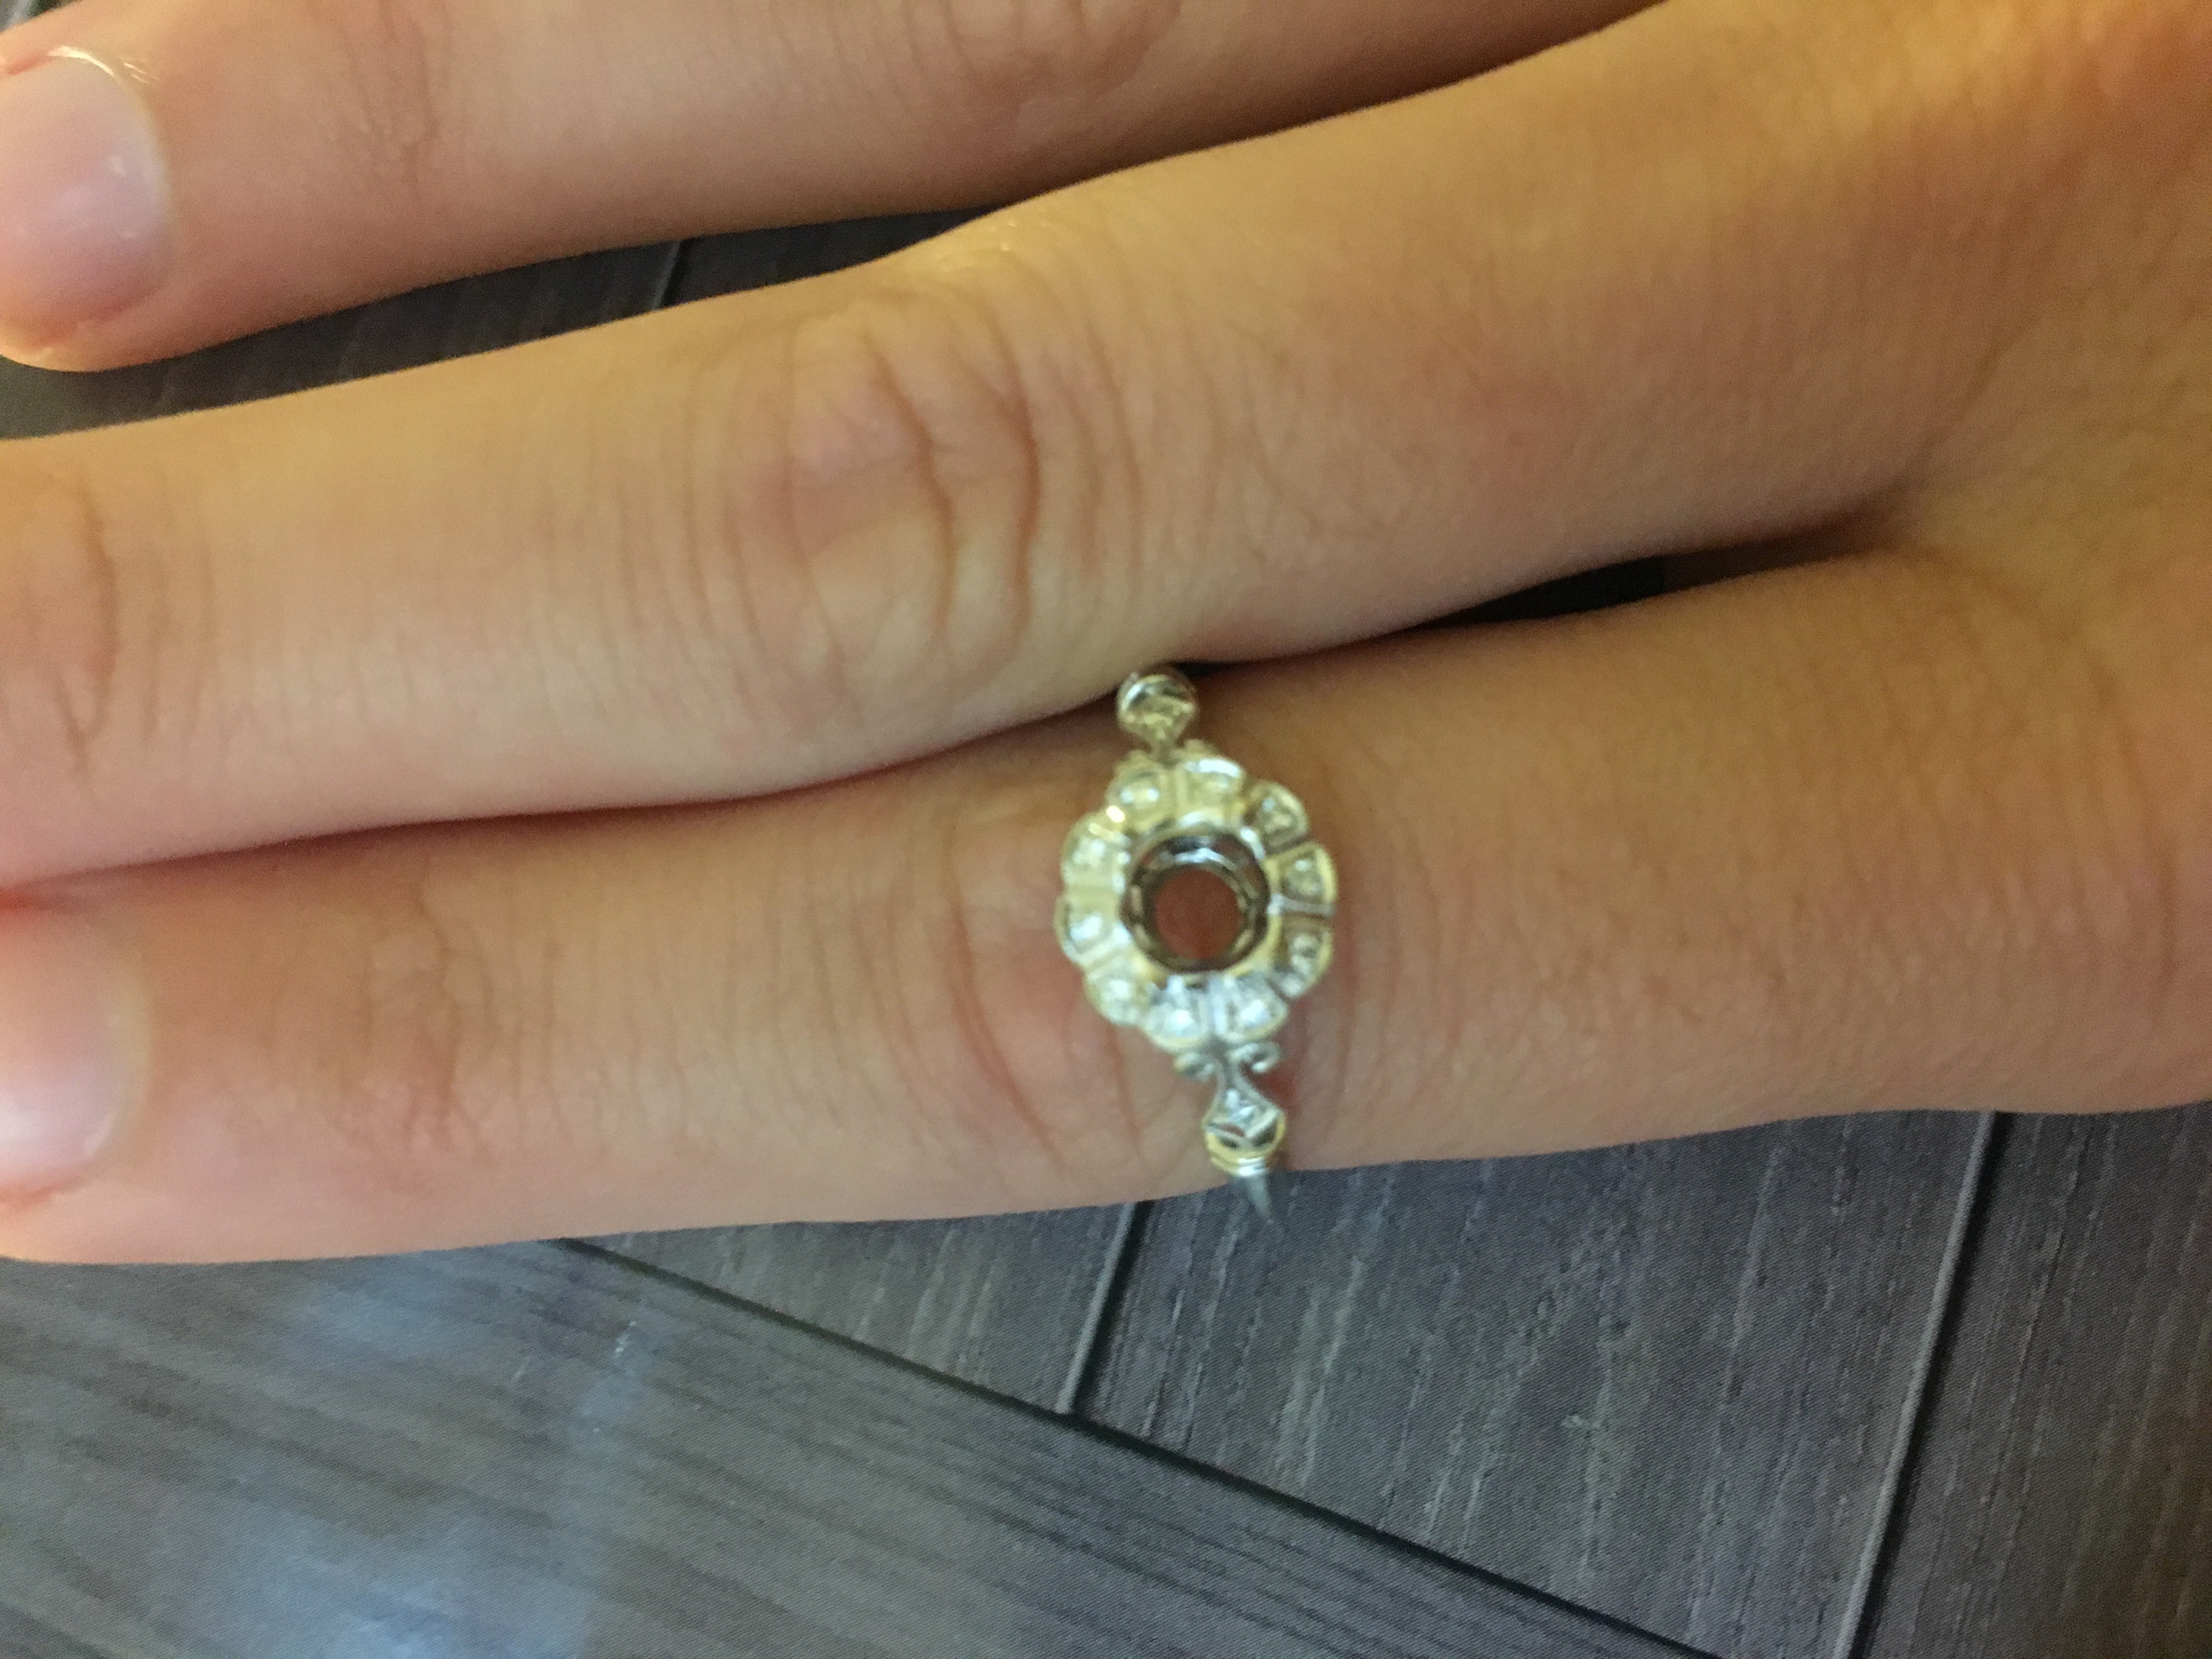 Jolie engagement ring size 8. Previously held 3/4 carat diamond